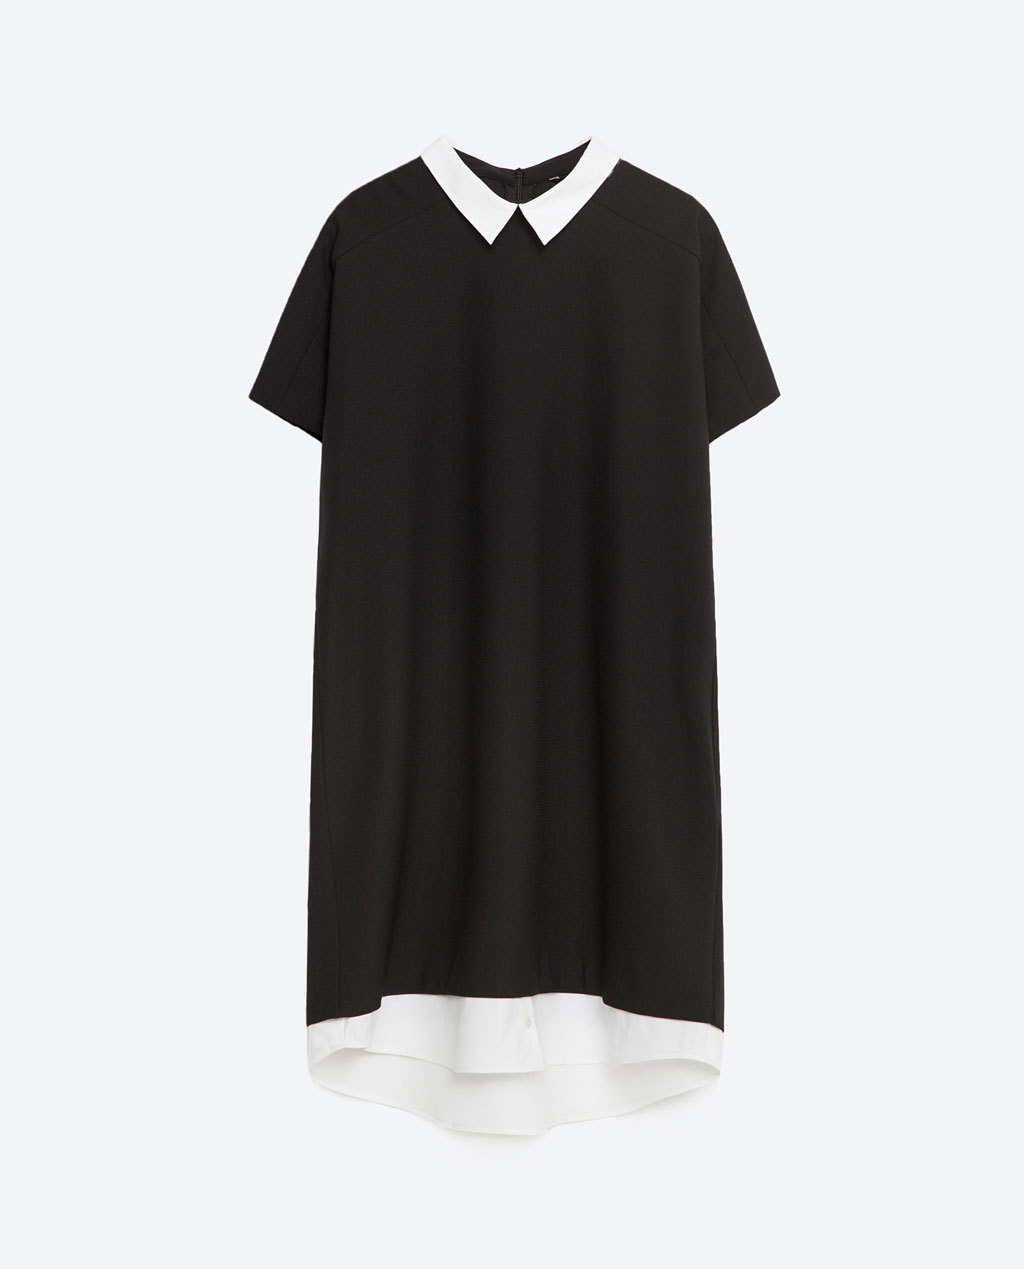 Dress With Contrast Neck And Hem - style: shift; length: mid thigh; secondary colour: white; predominant colour: black; occasions: casual, creative work; fit: soft a-line; fibres: polyester/polyamide - stretch; neckline: no opening/shirt collar/peter pan; sleeve length: short sleeve; sleeve style: standard; trends: monochrome; pattern type: fabric; pattern size: light/subtle; pattern: colourblock; texture group: jersey - stretchy/drapey; season: s/s 2016; wardrobe: highlight